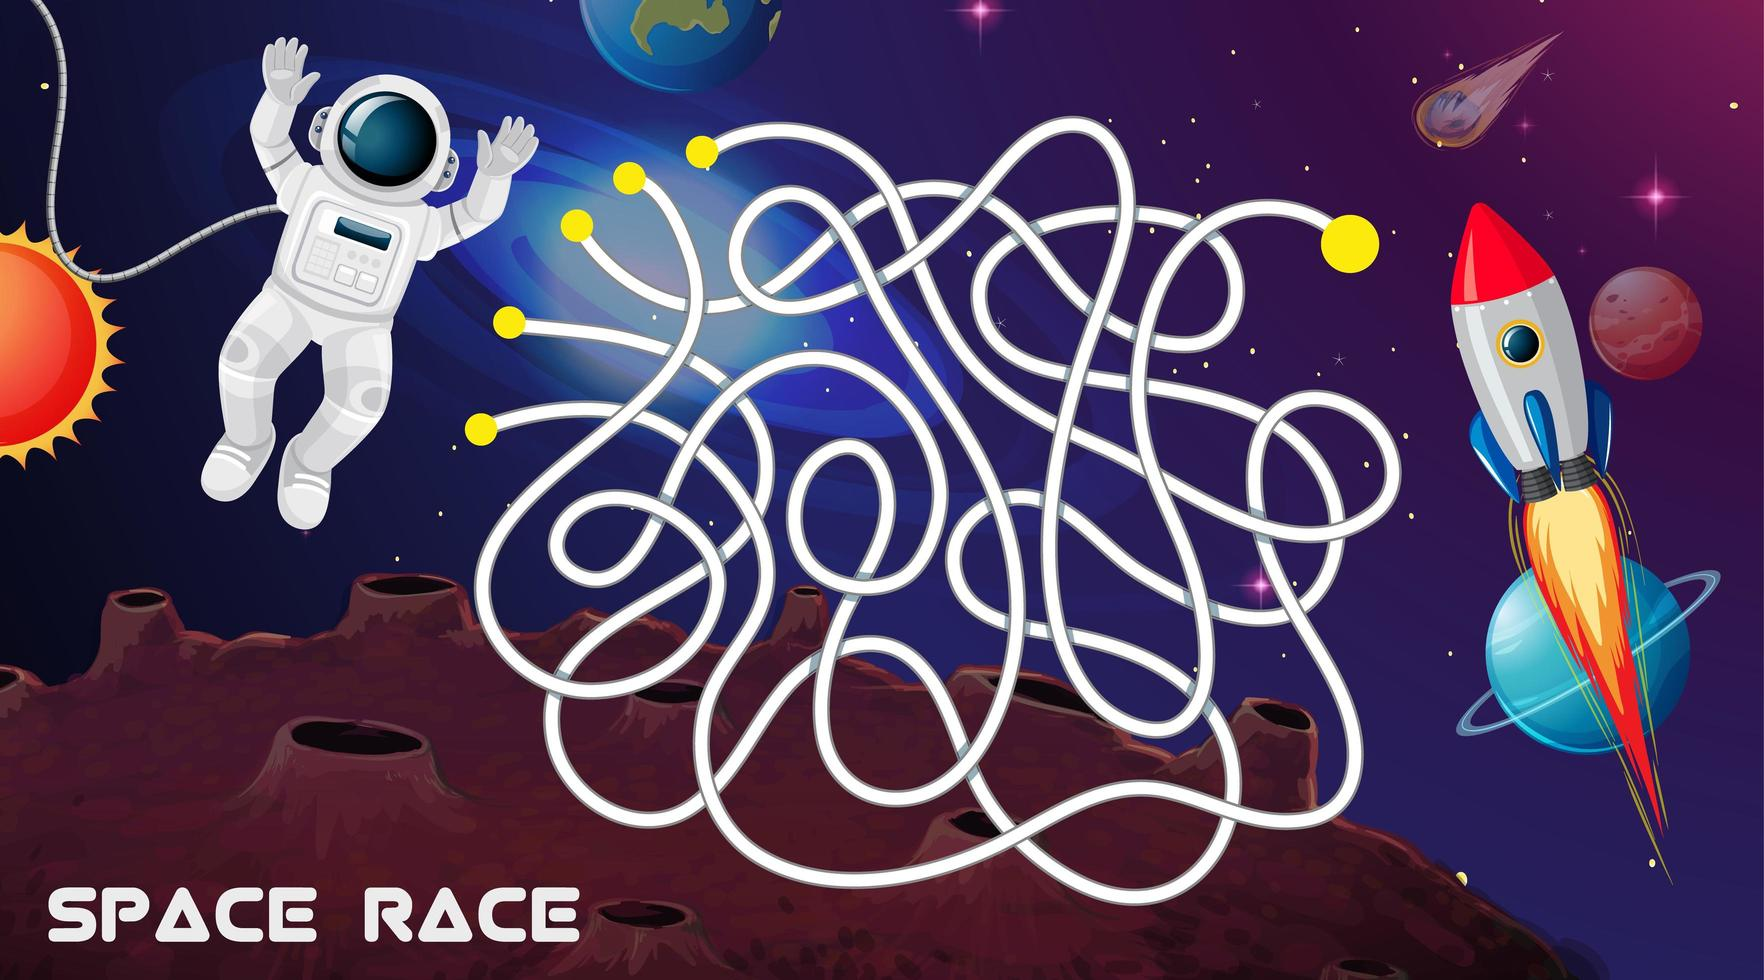 Space race game achtergrond vector